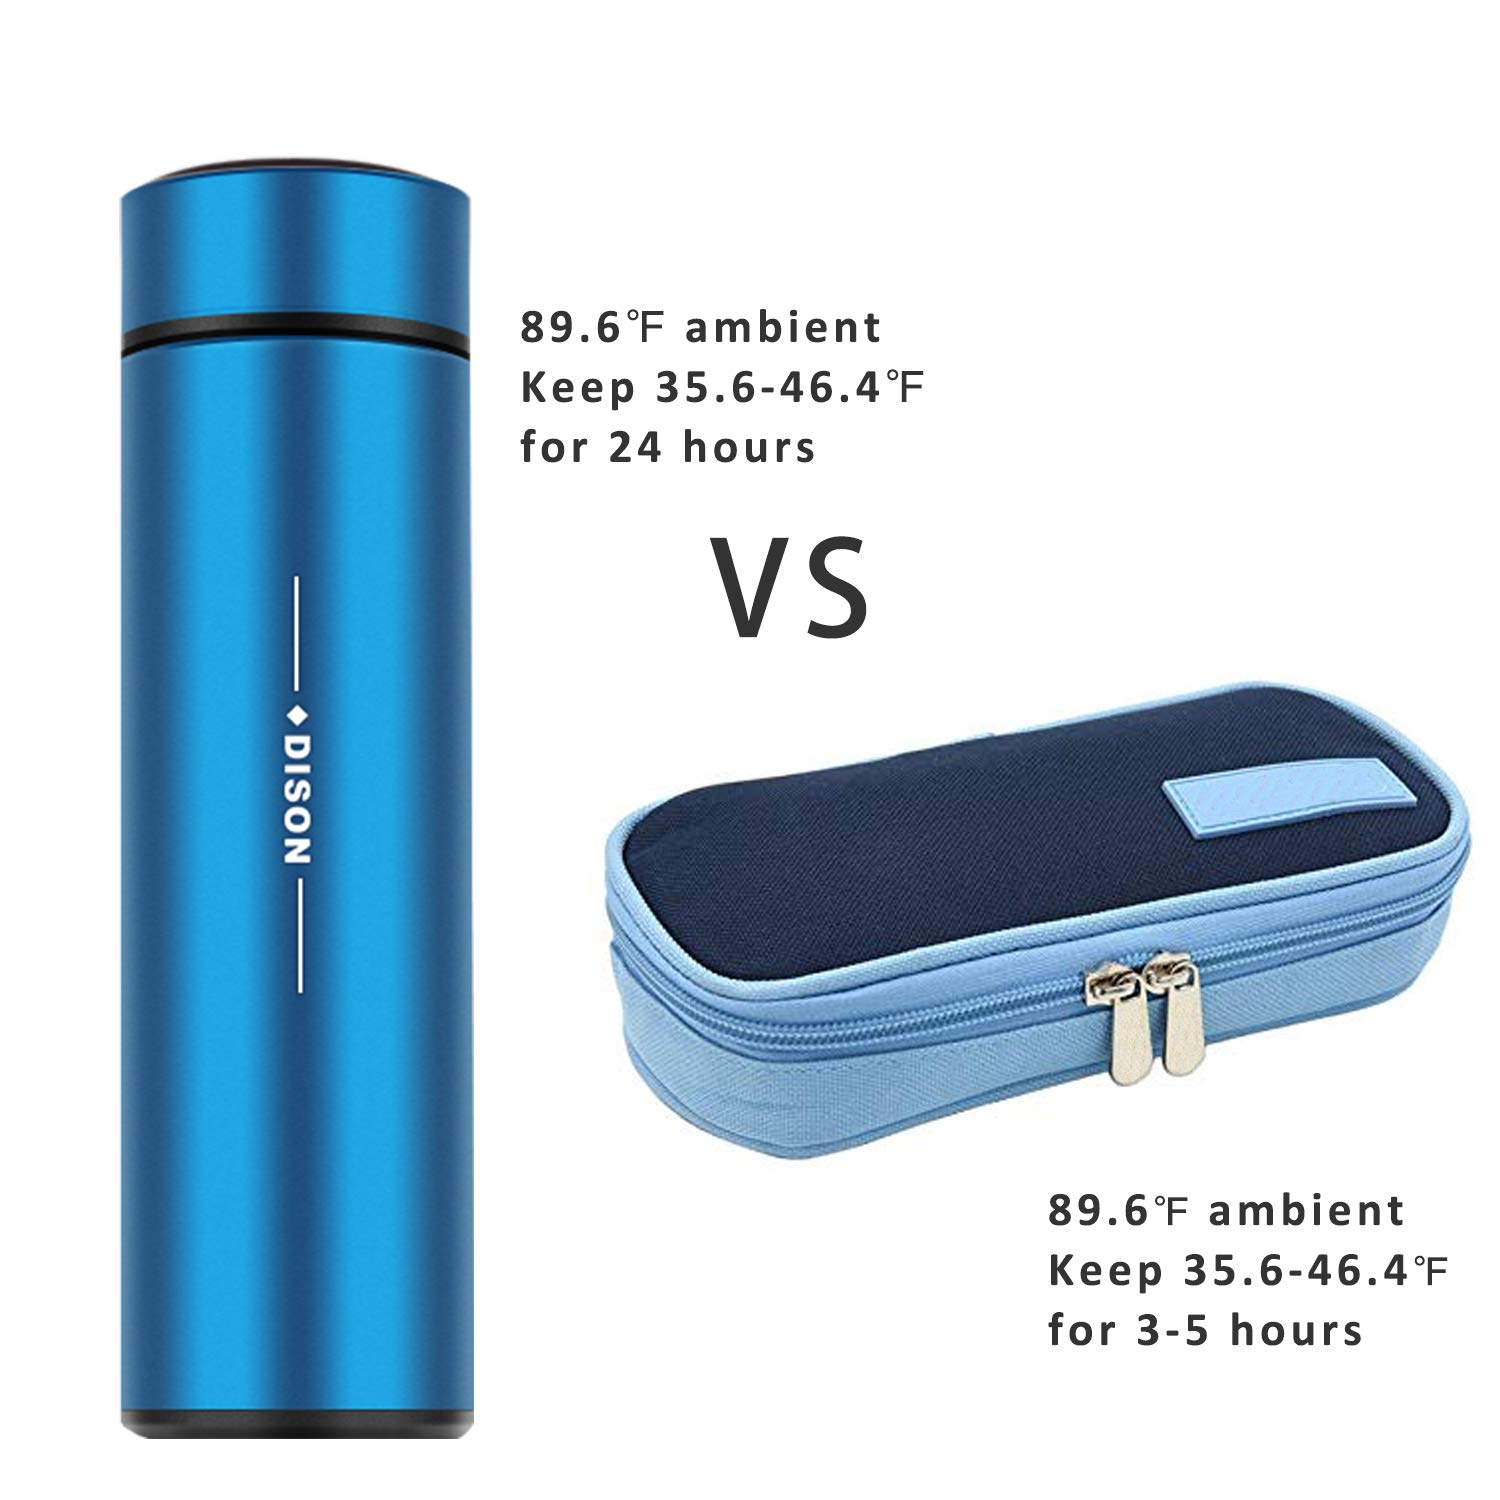 Dison Portable Insulin Cooler Mini Cold Refrigerato 24 Hours at 2-8 Chilled Cup Cooler Box Drug Constant Temperature Refrigerated Blue by dison (Image #2)